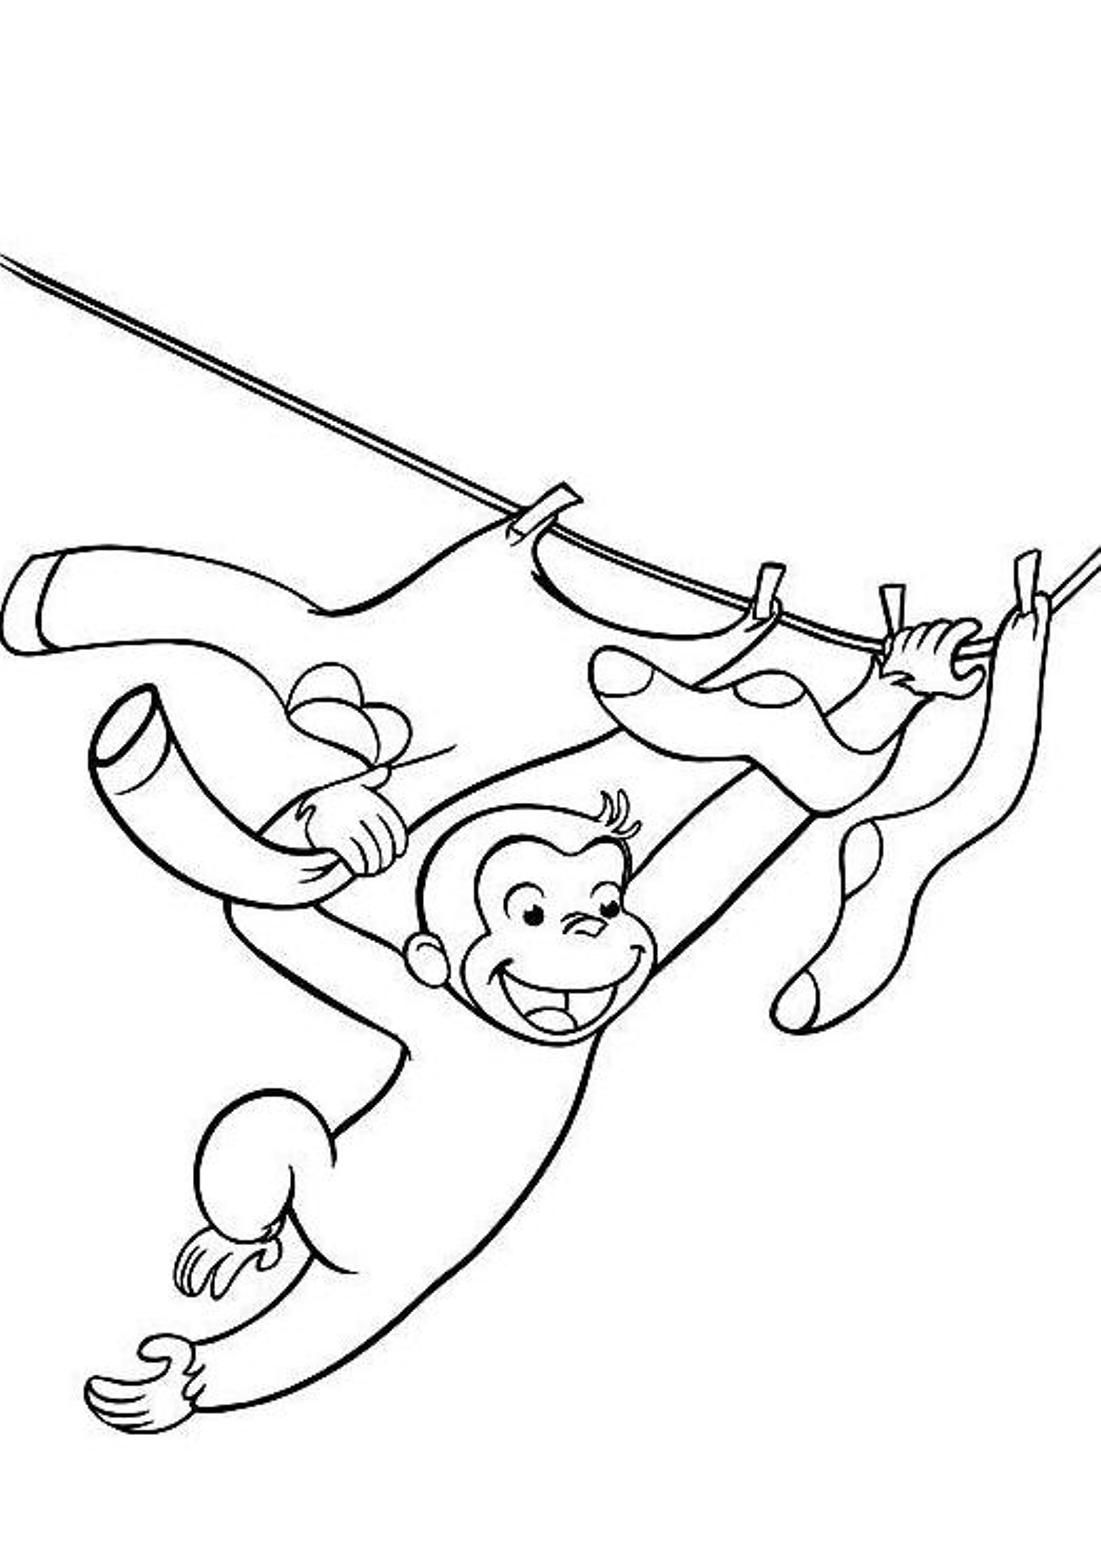 Coloring book curious george - Curious George Coloring Pages 1st B Day Pinterest Curious George Free Coloring And Monkey